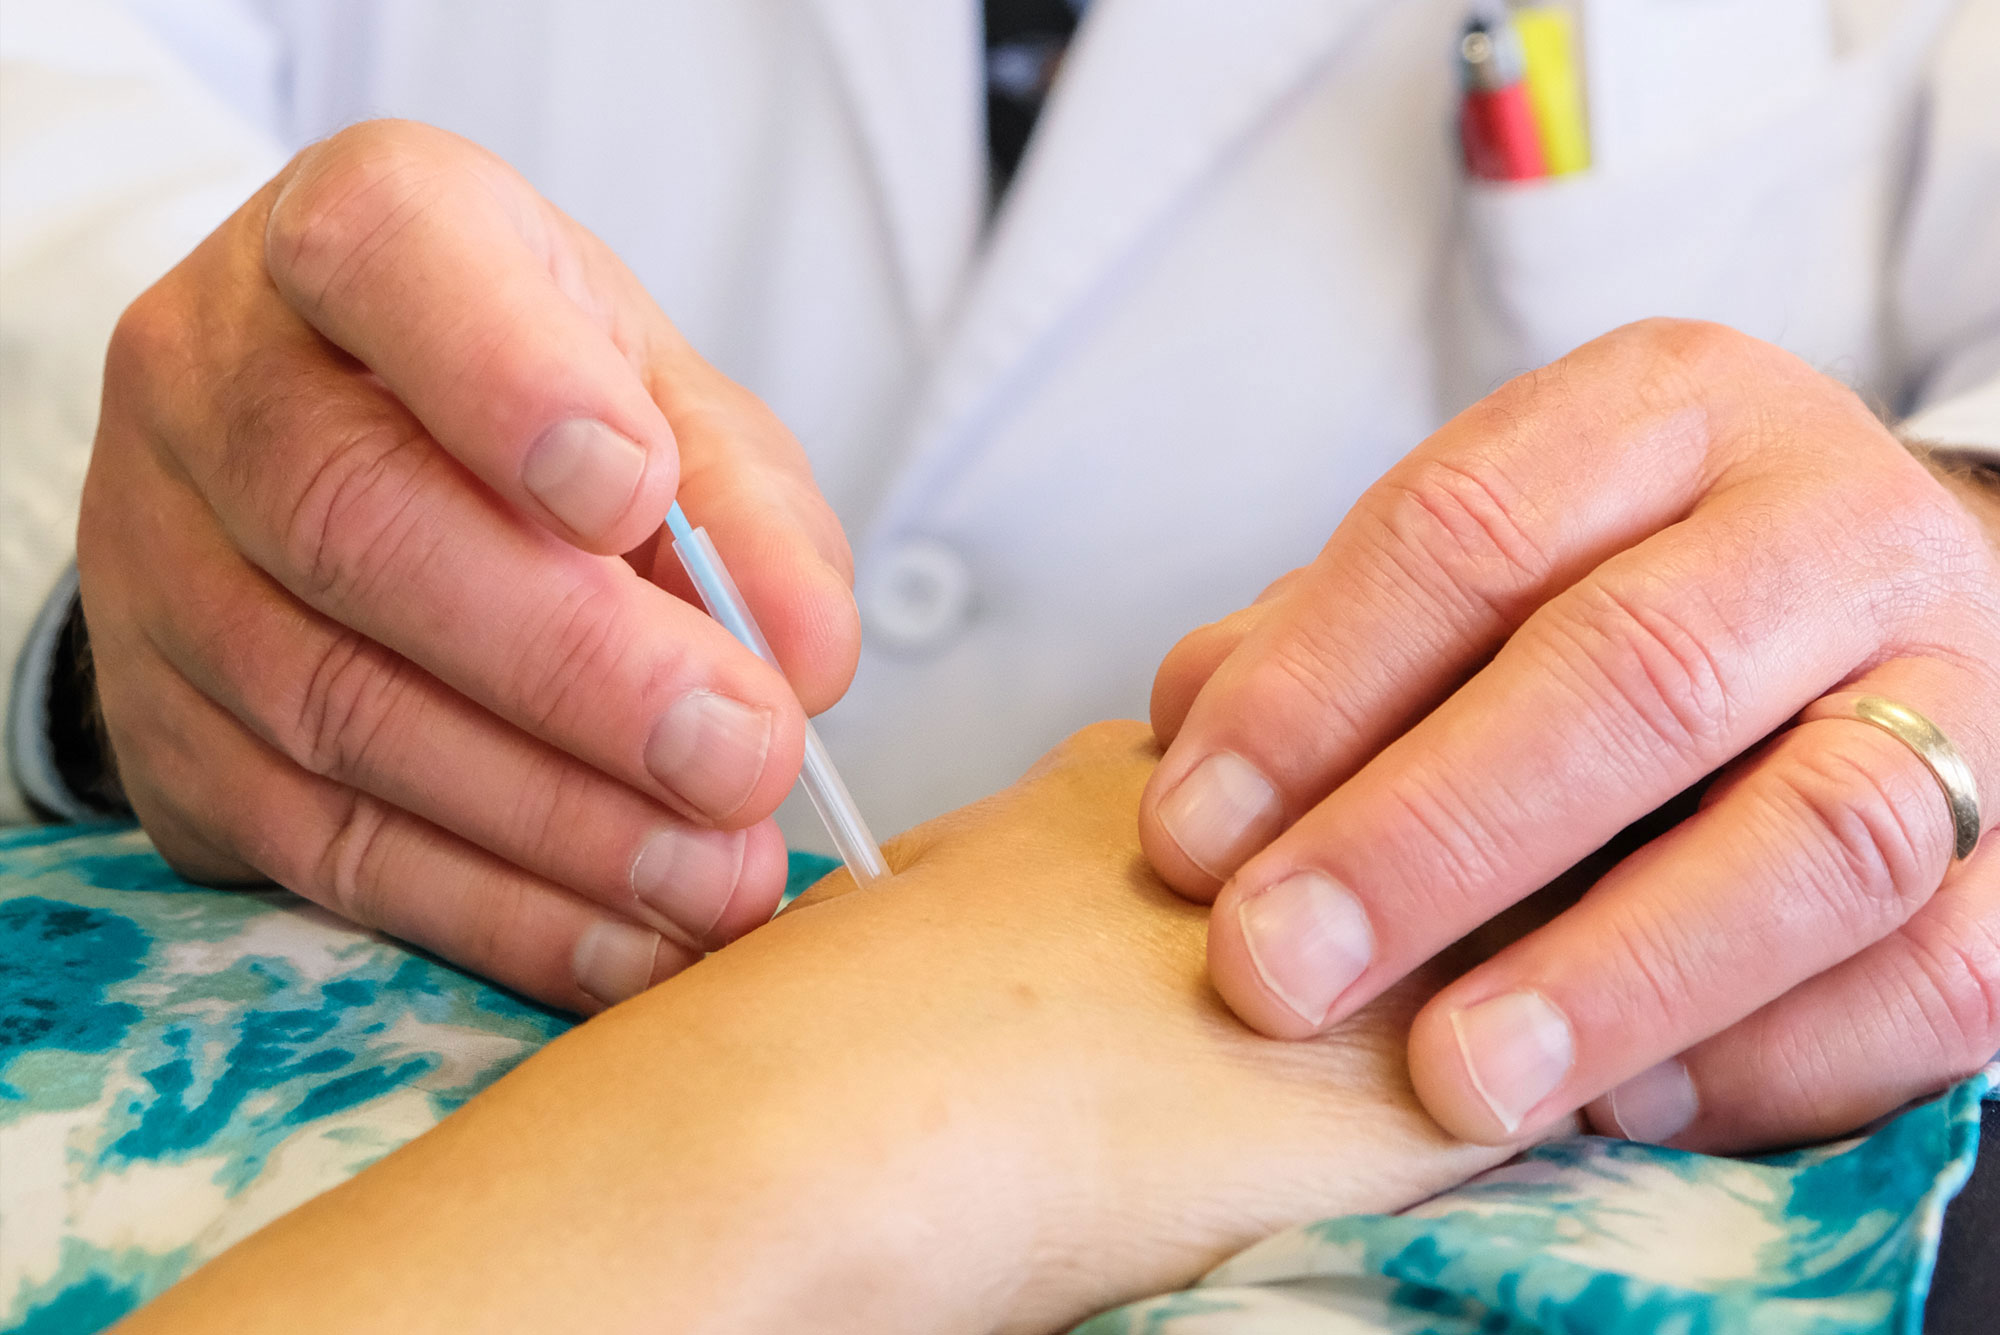 What to Expect from an Acupuncture Treatment